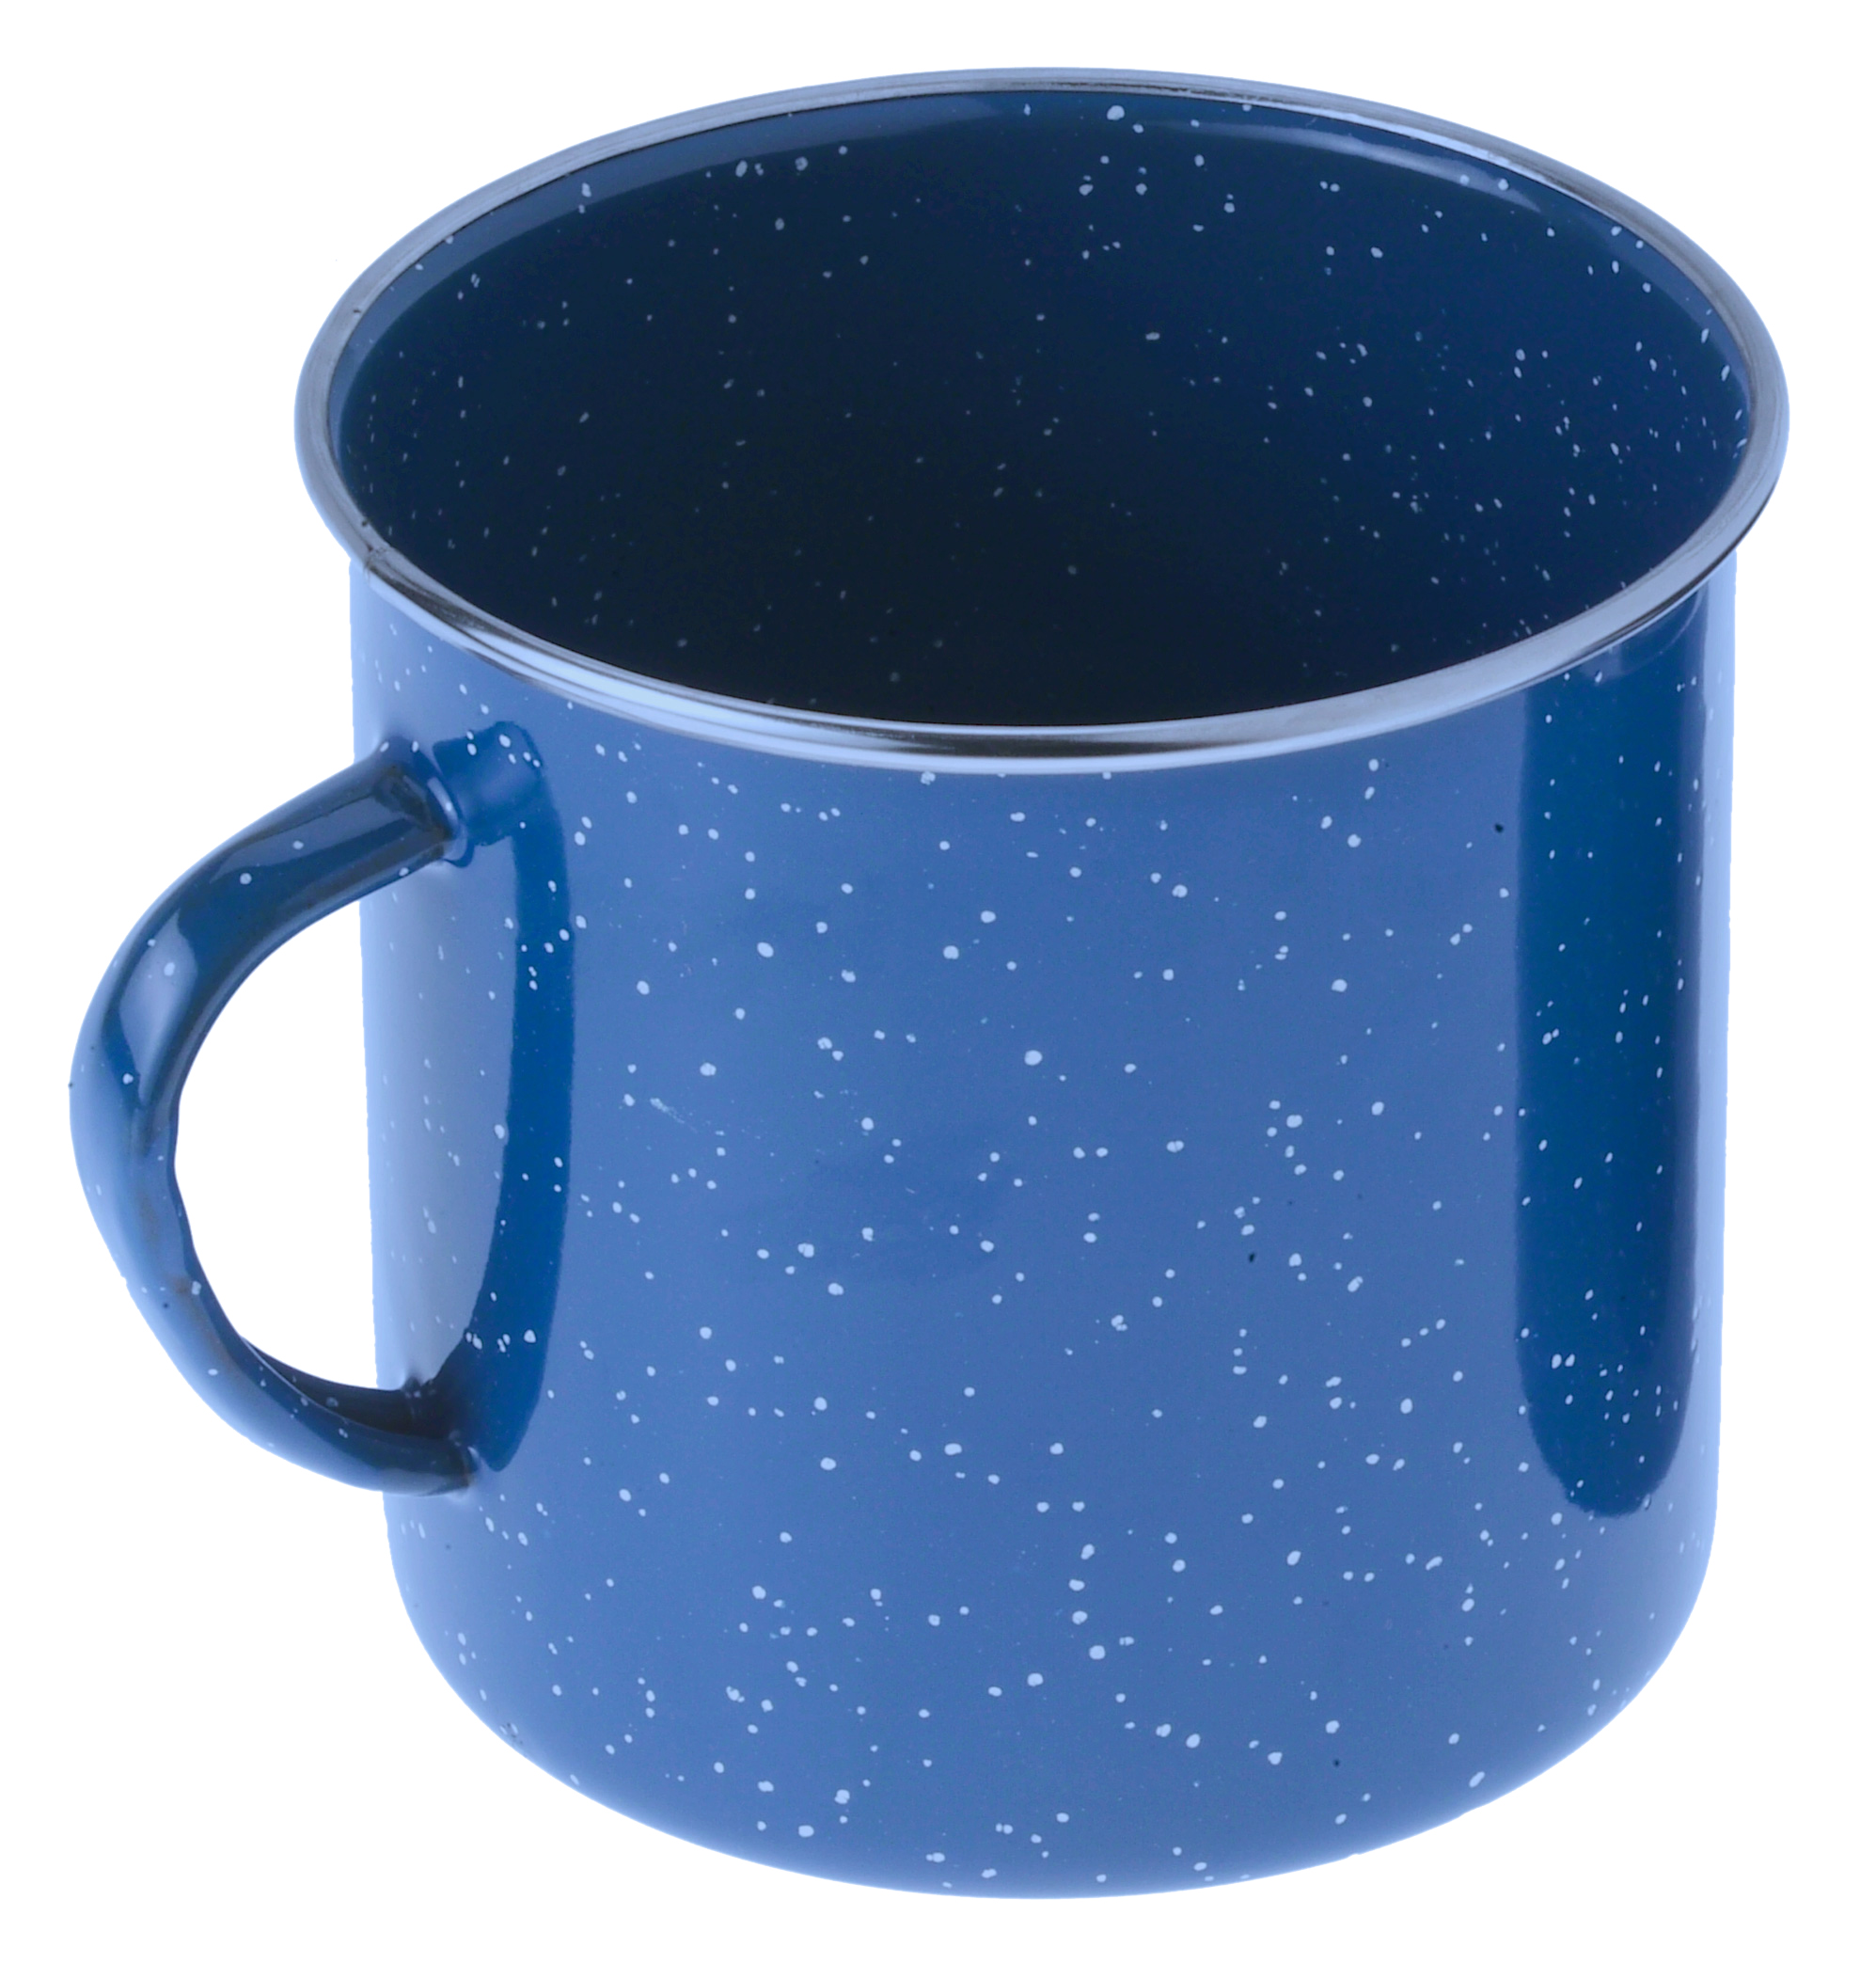 Cup photo